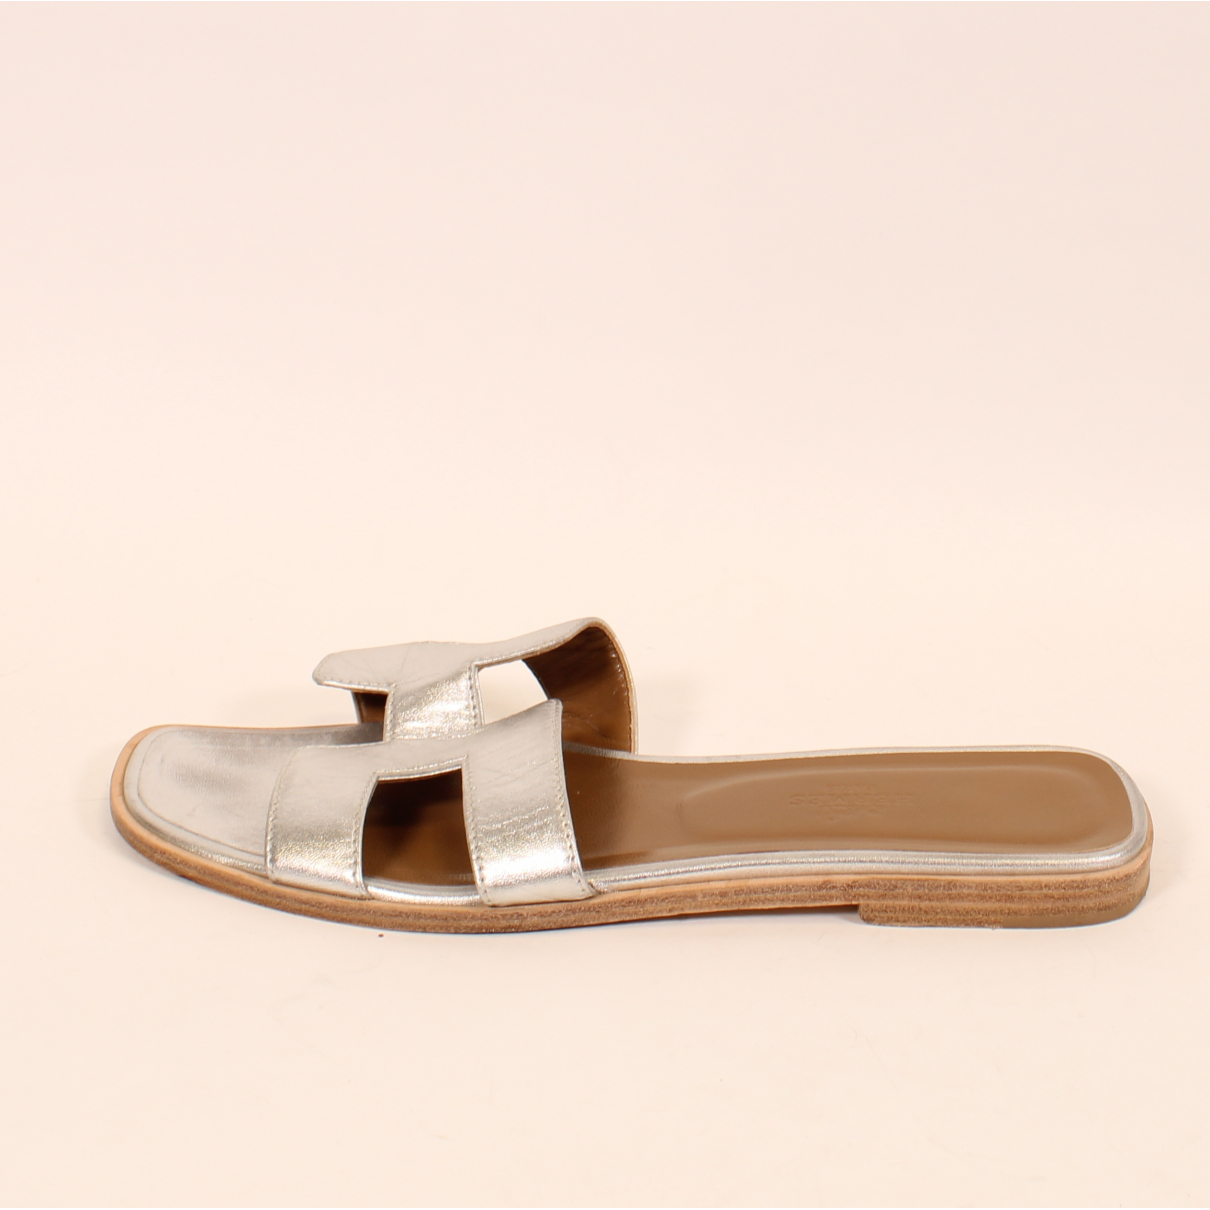 Hermès Oran Silver Leather Sandals for Women 39 EU